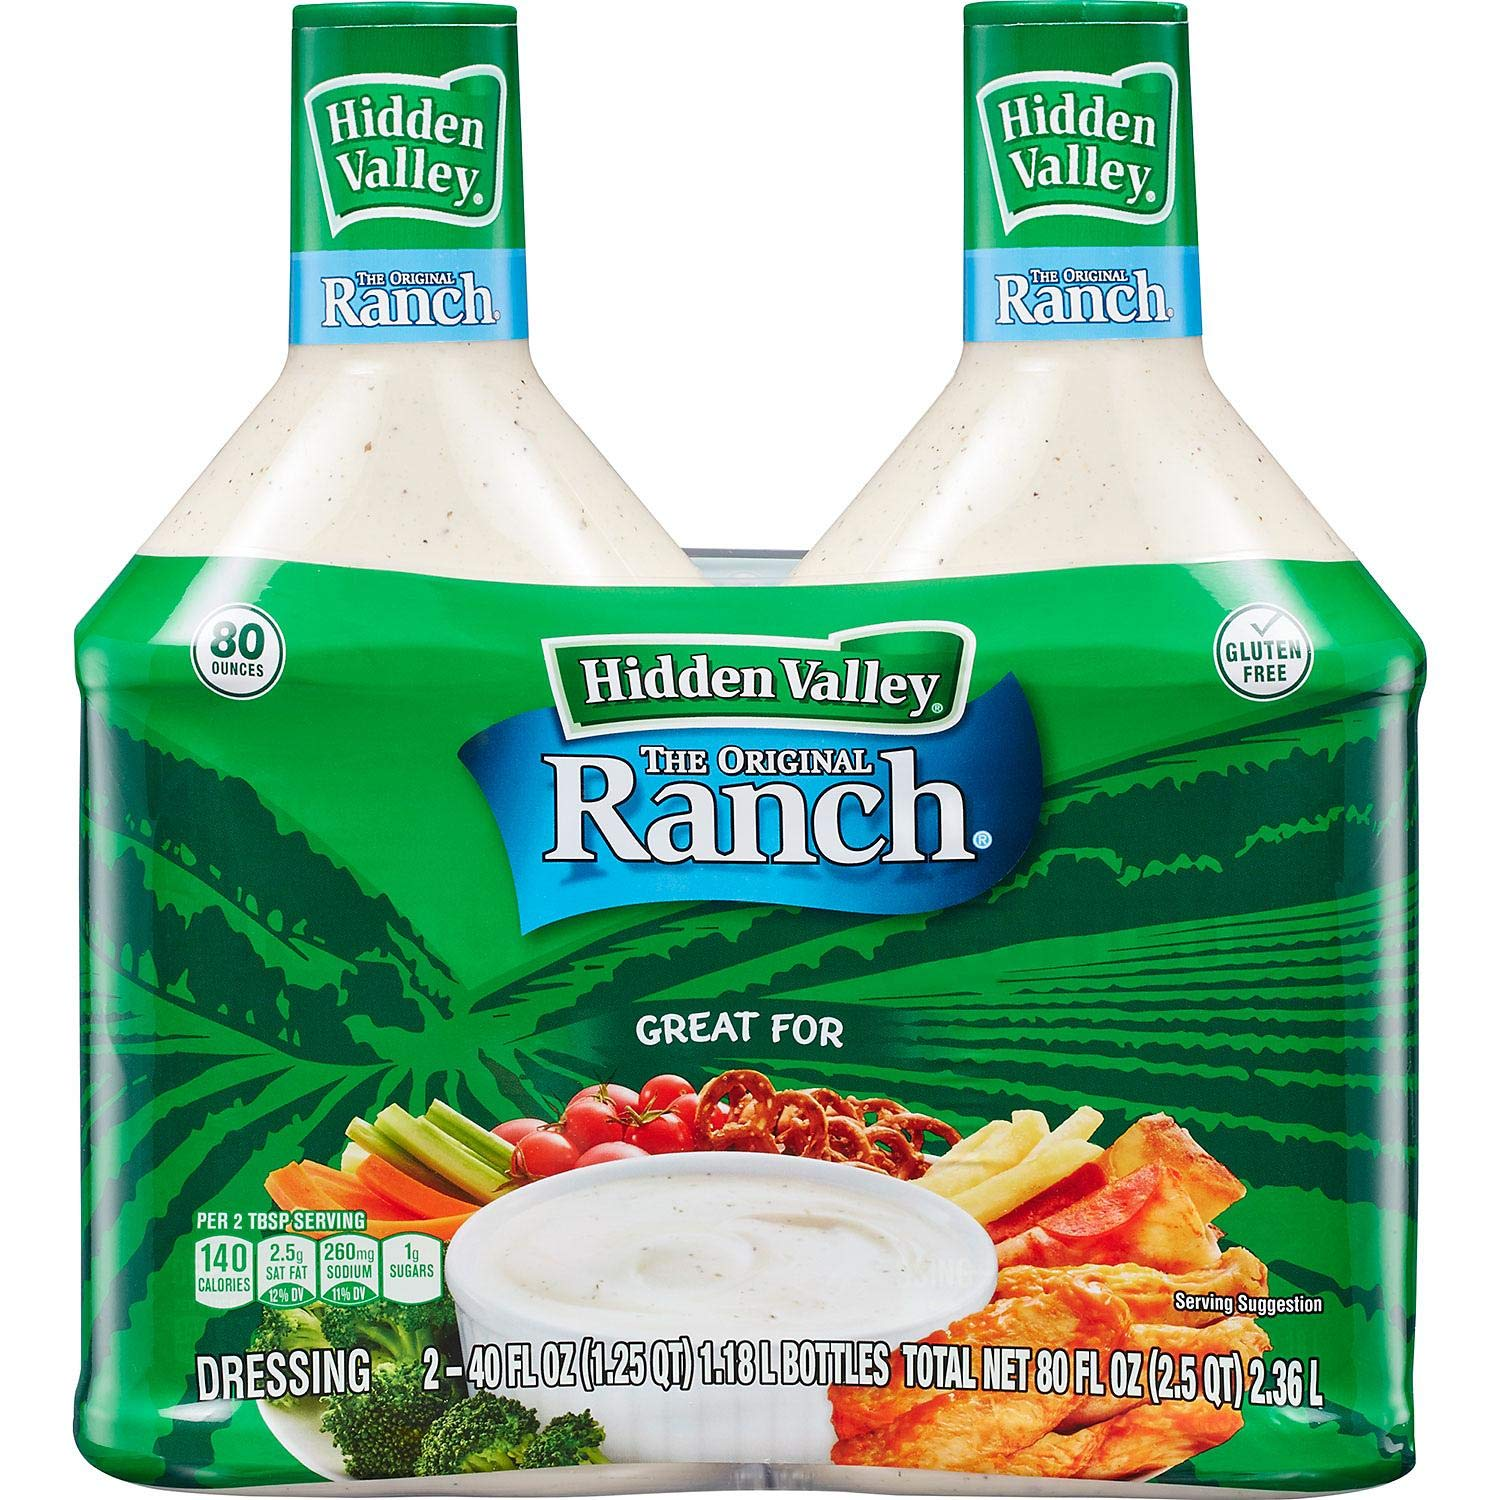 Hidden Valley Ranch - 2/40 Oz. Btls.